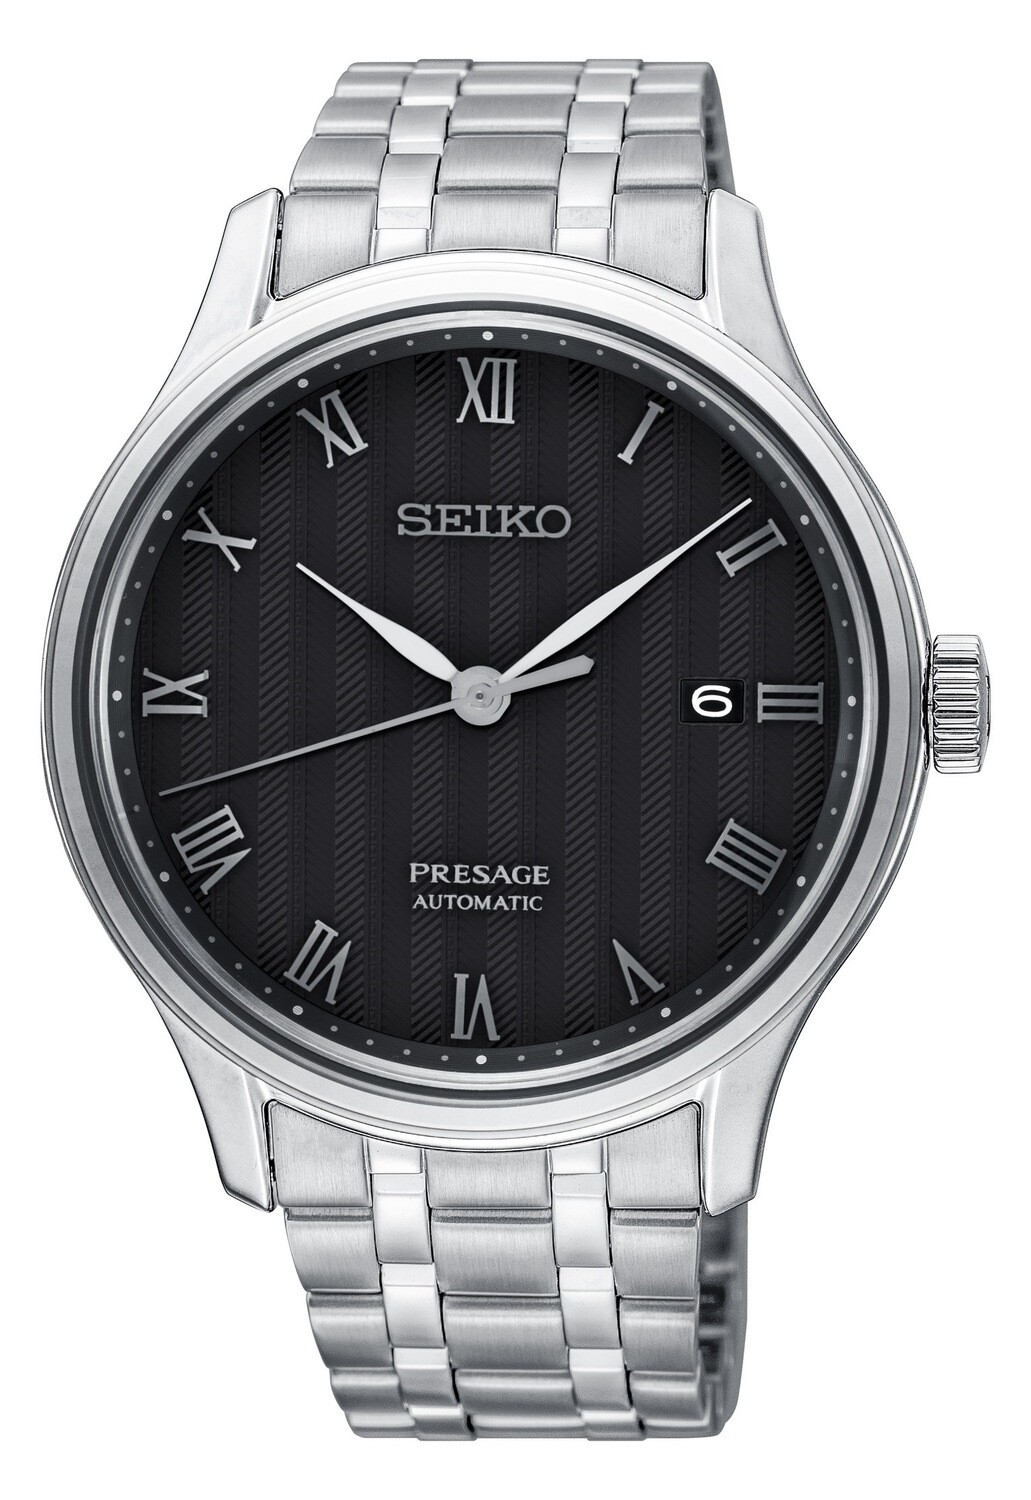 Seiko SRPC81J1 Gents PRESAGE Automatic Watch